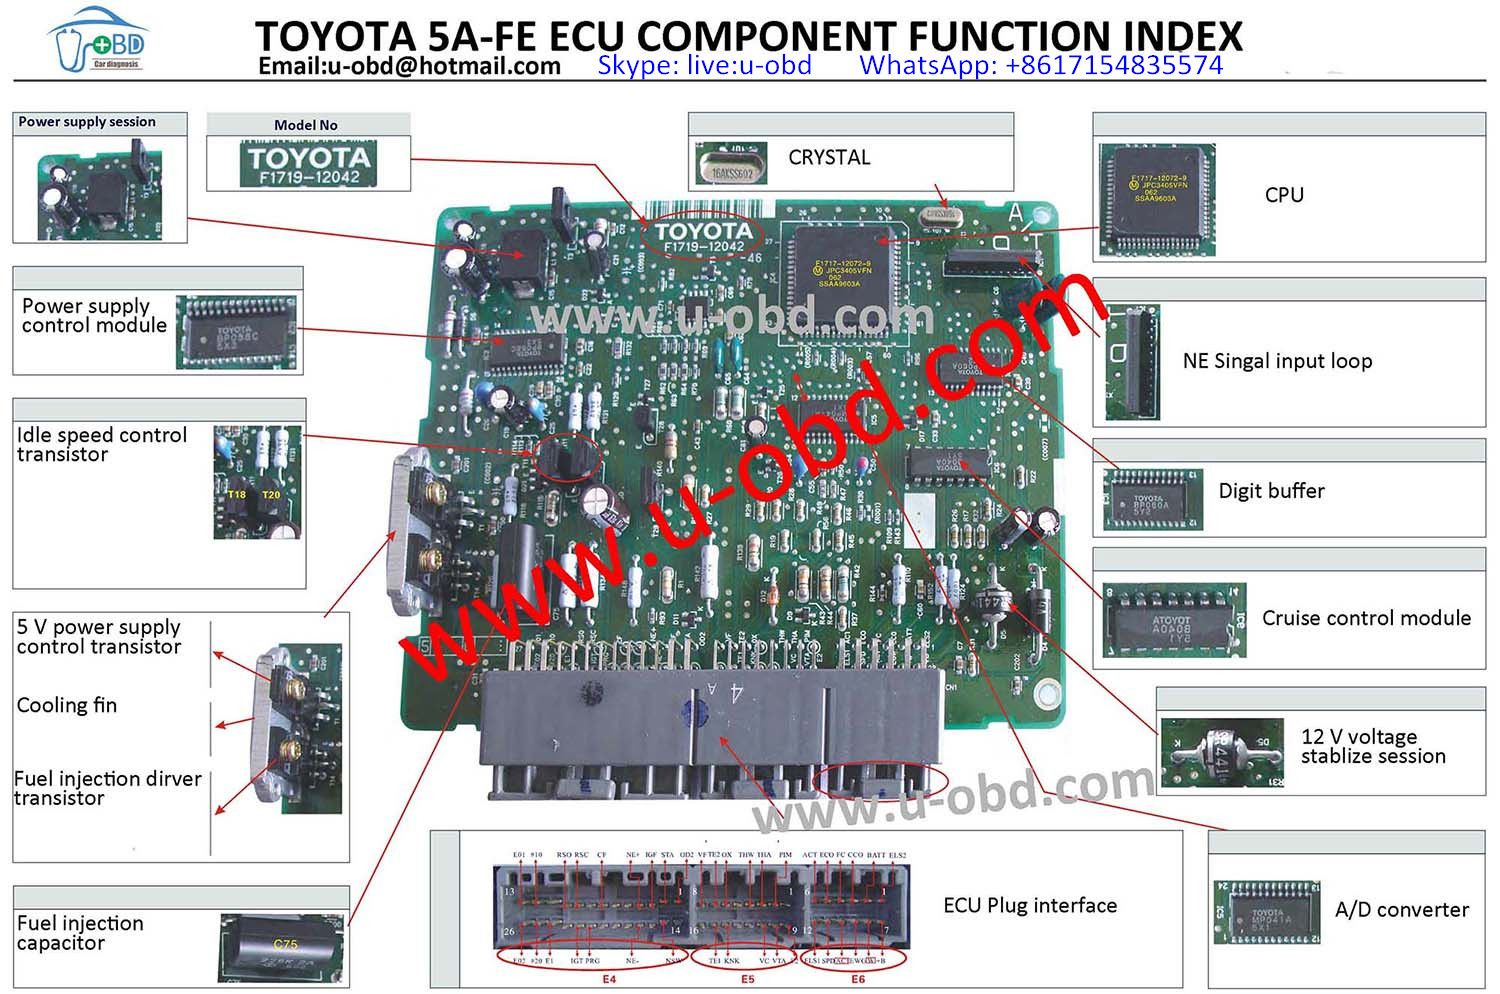 small resolution of toyota 5afe ecu wiring diagram schematic diagramtoyota 5afe ecu wiring diagram wiring library toyota wiring diagrams